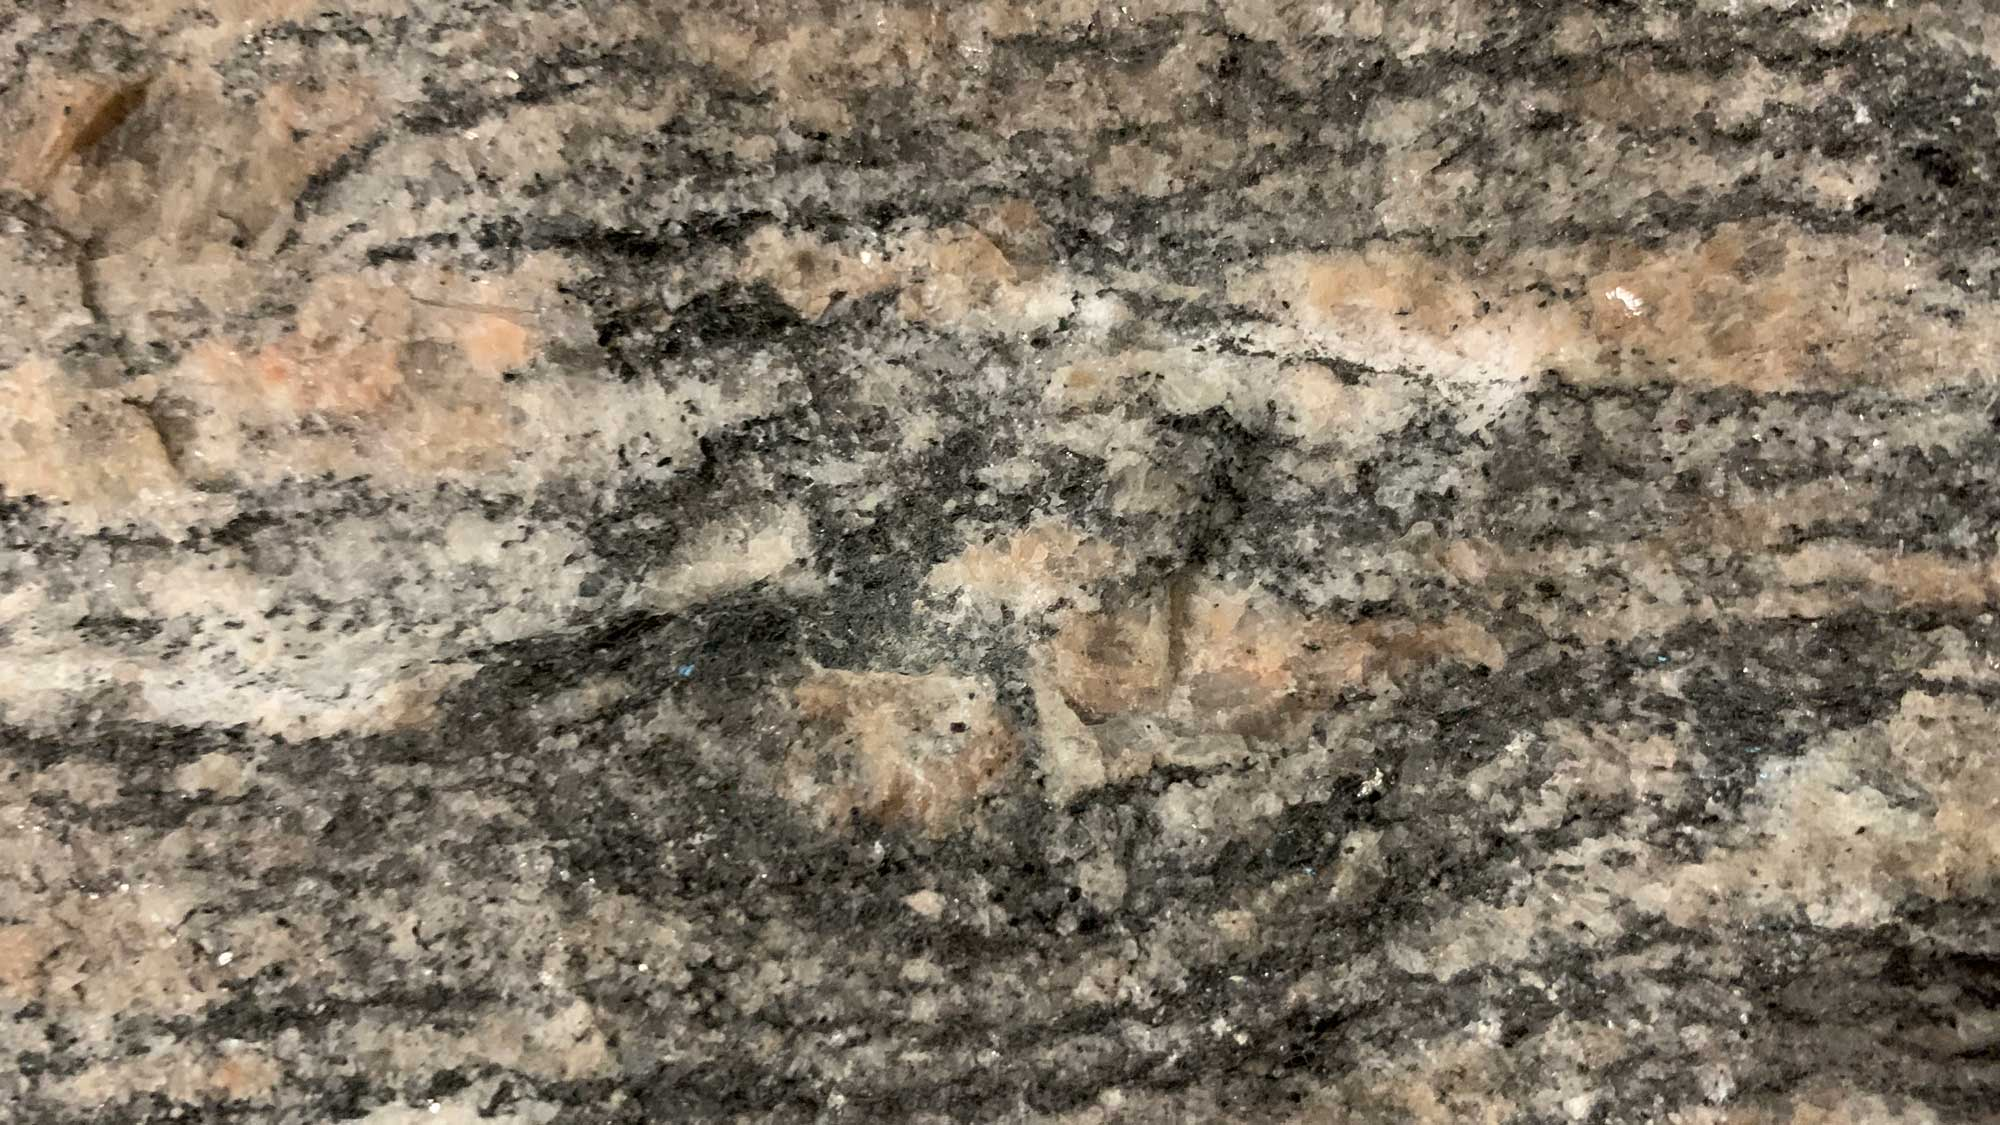 Up-close photograph of gneiss, a type of metamorphic rock.